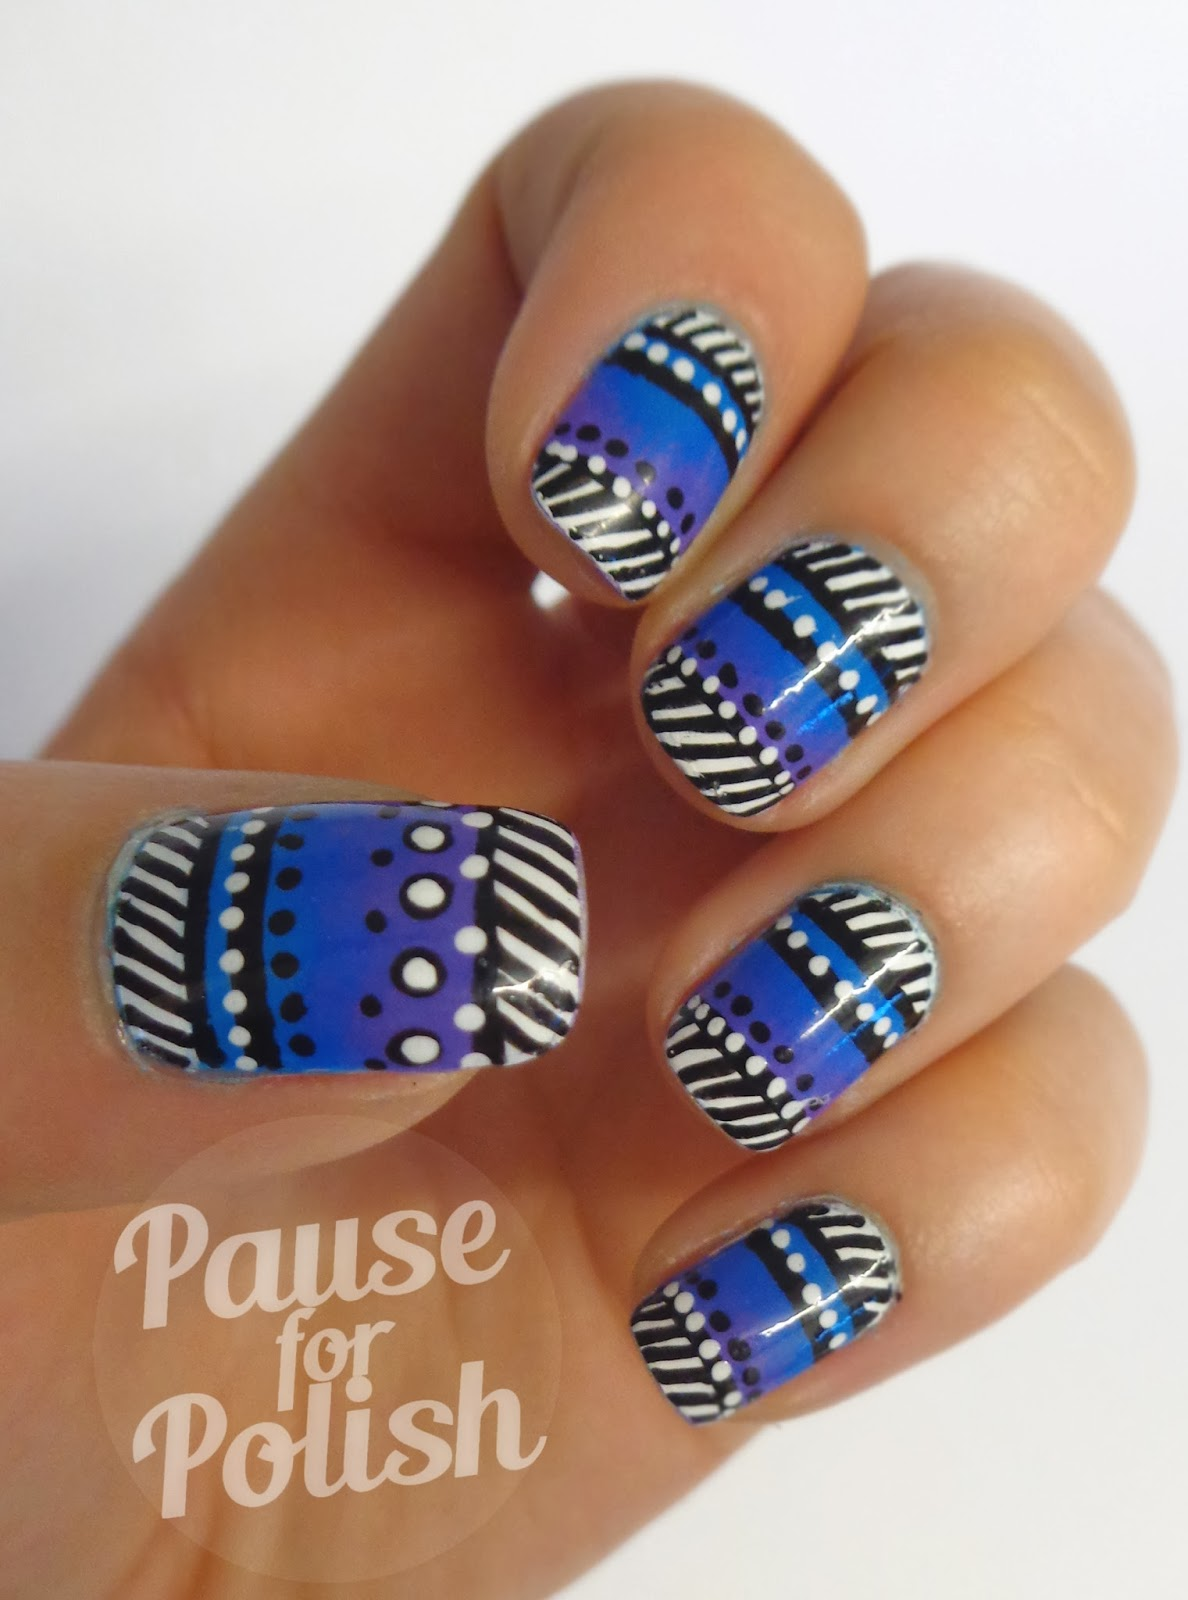 Pause For Polish: Claire\'s Accessories Neon Purple Nail Art!